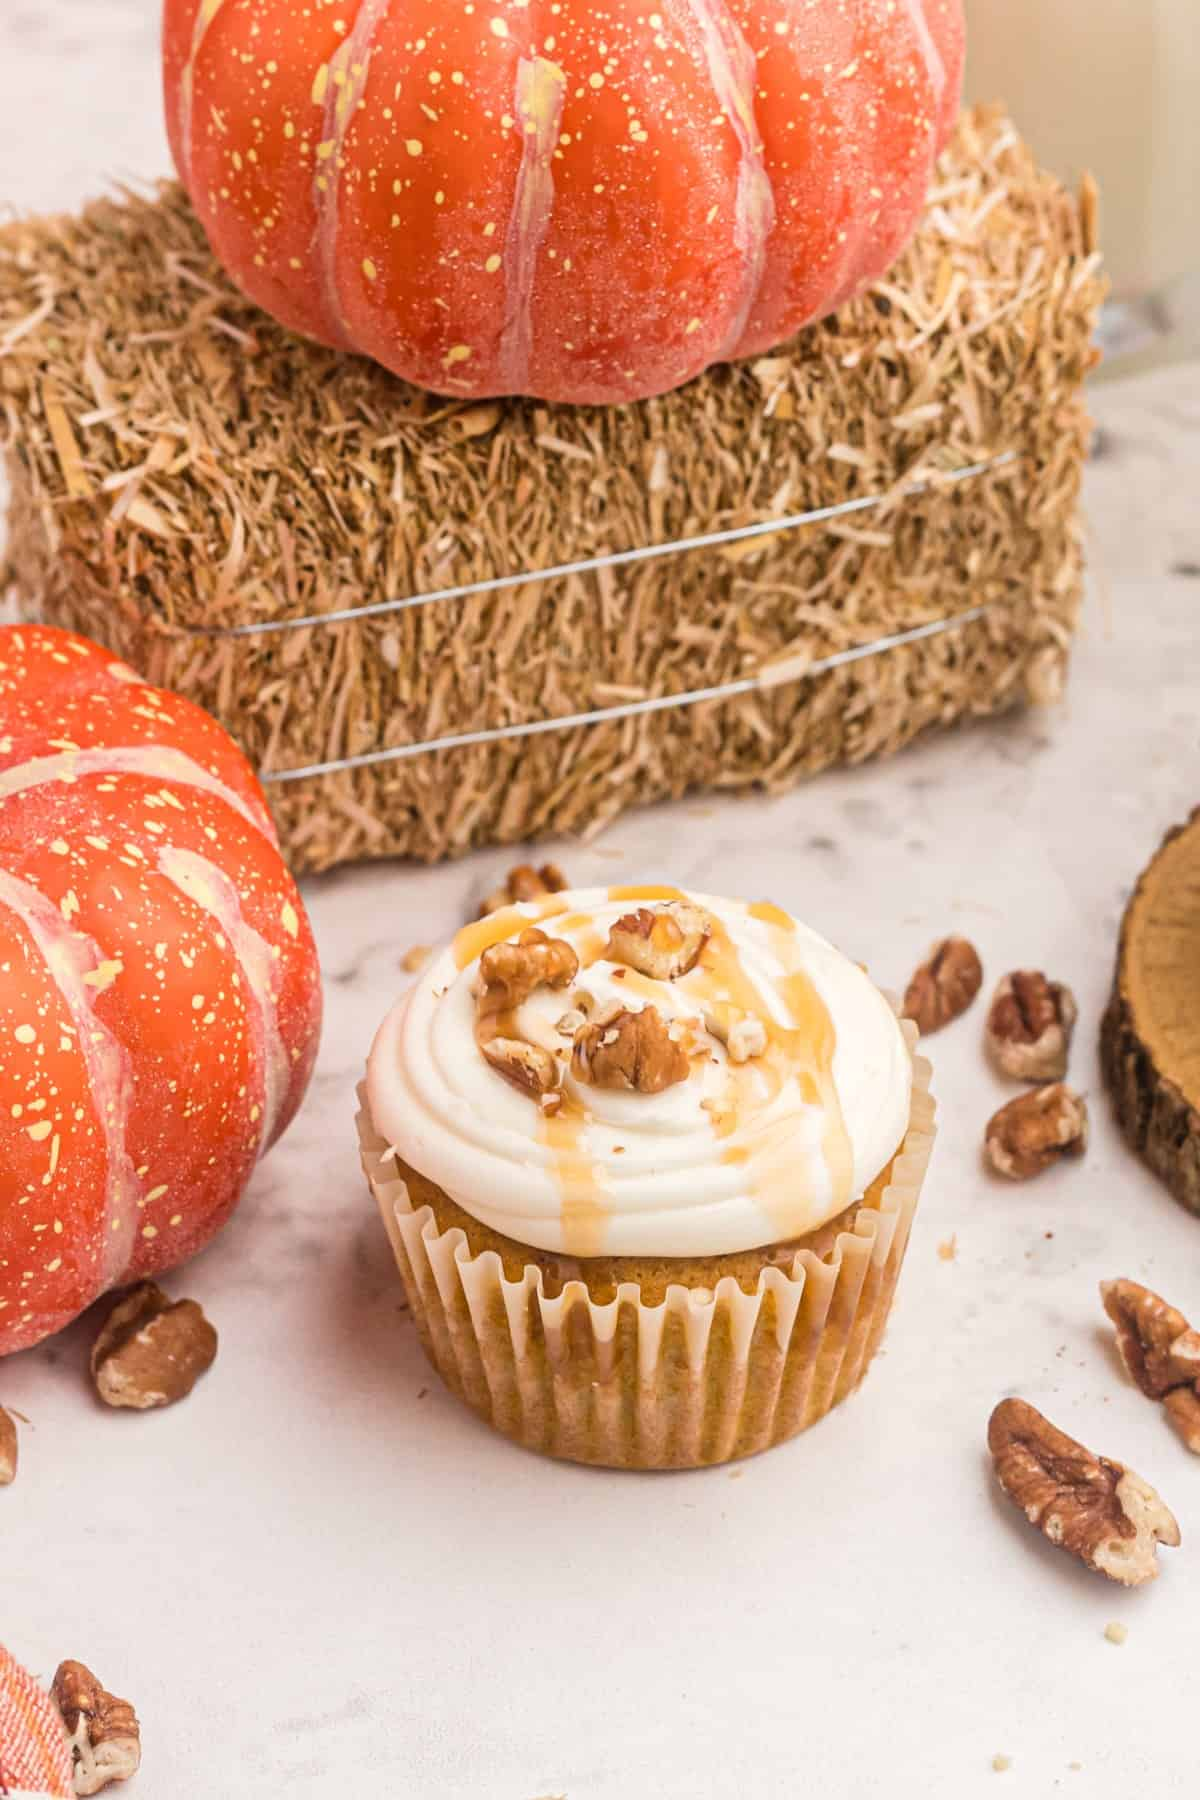 Pumpkin cupcake with pumpkins and hay in background.